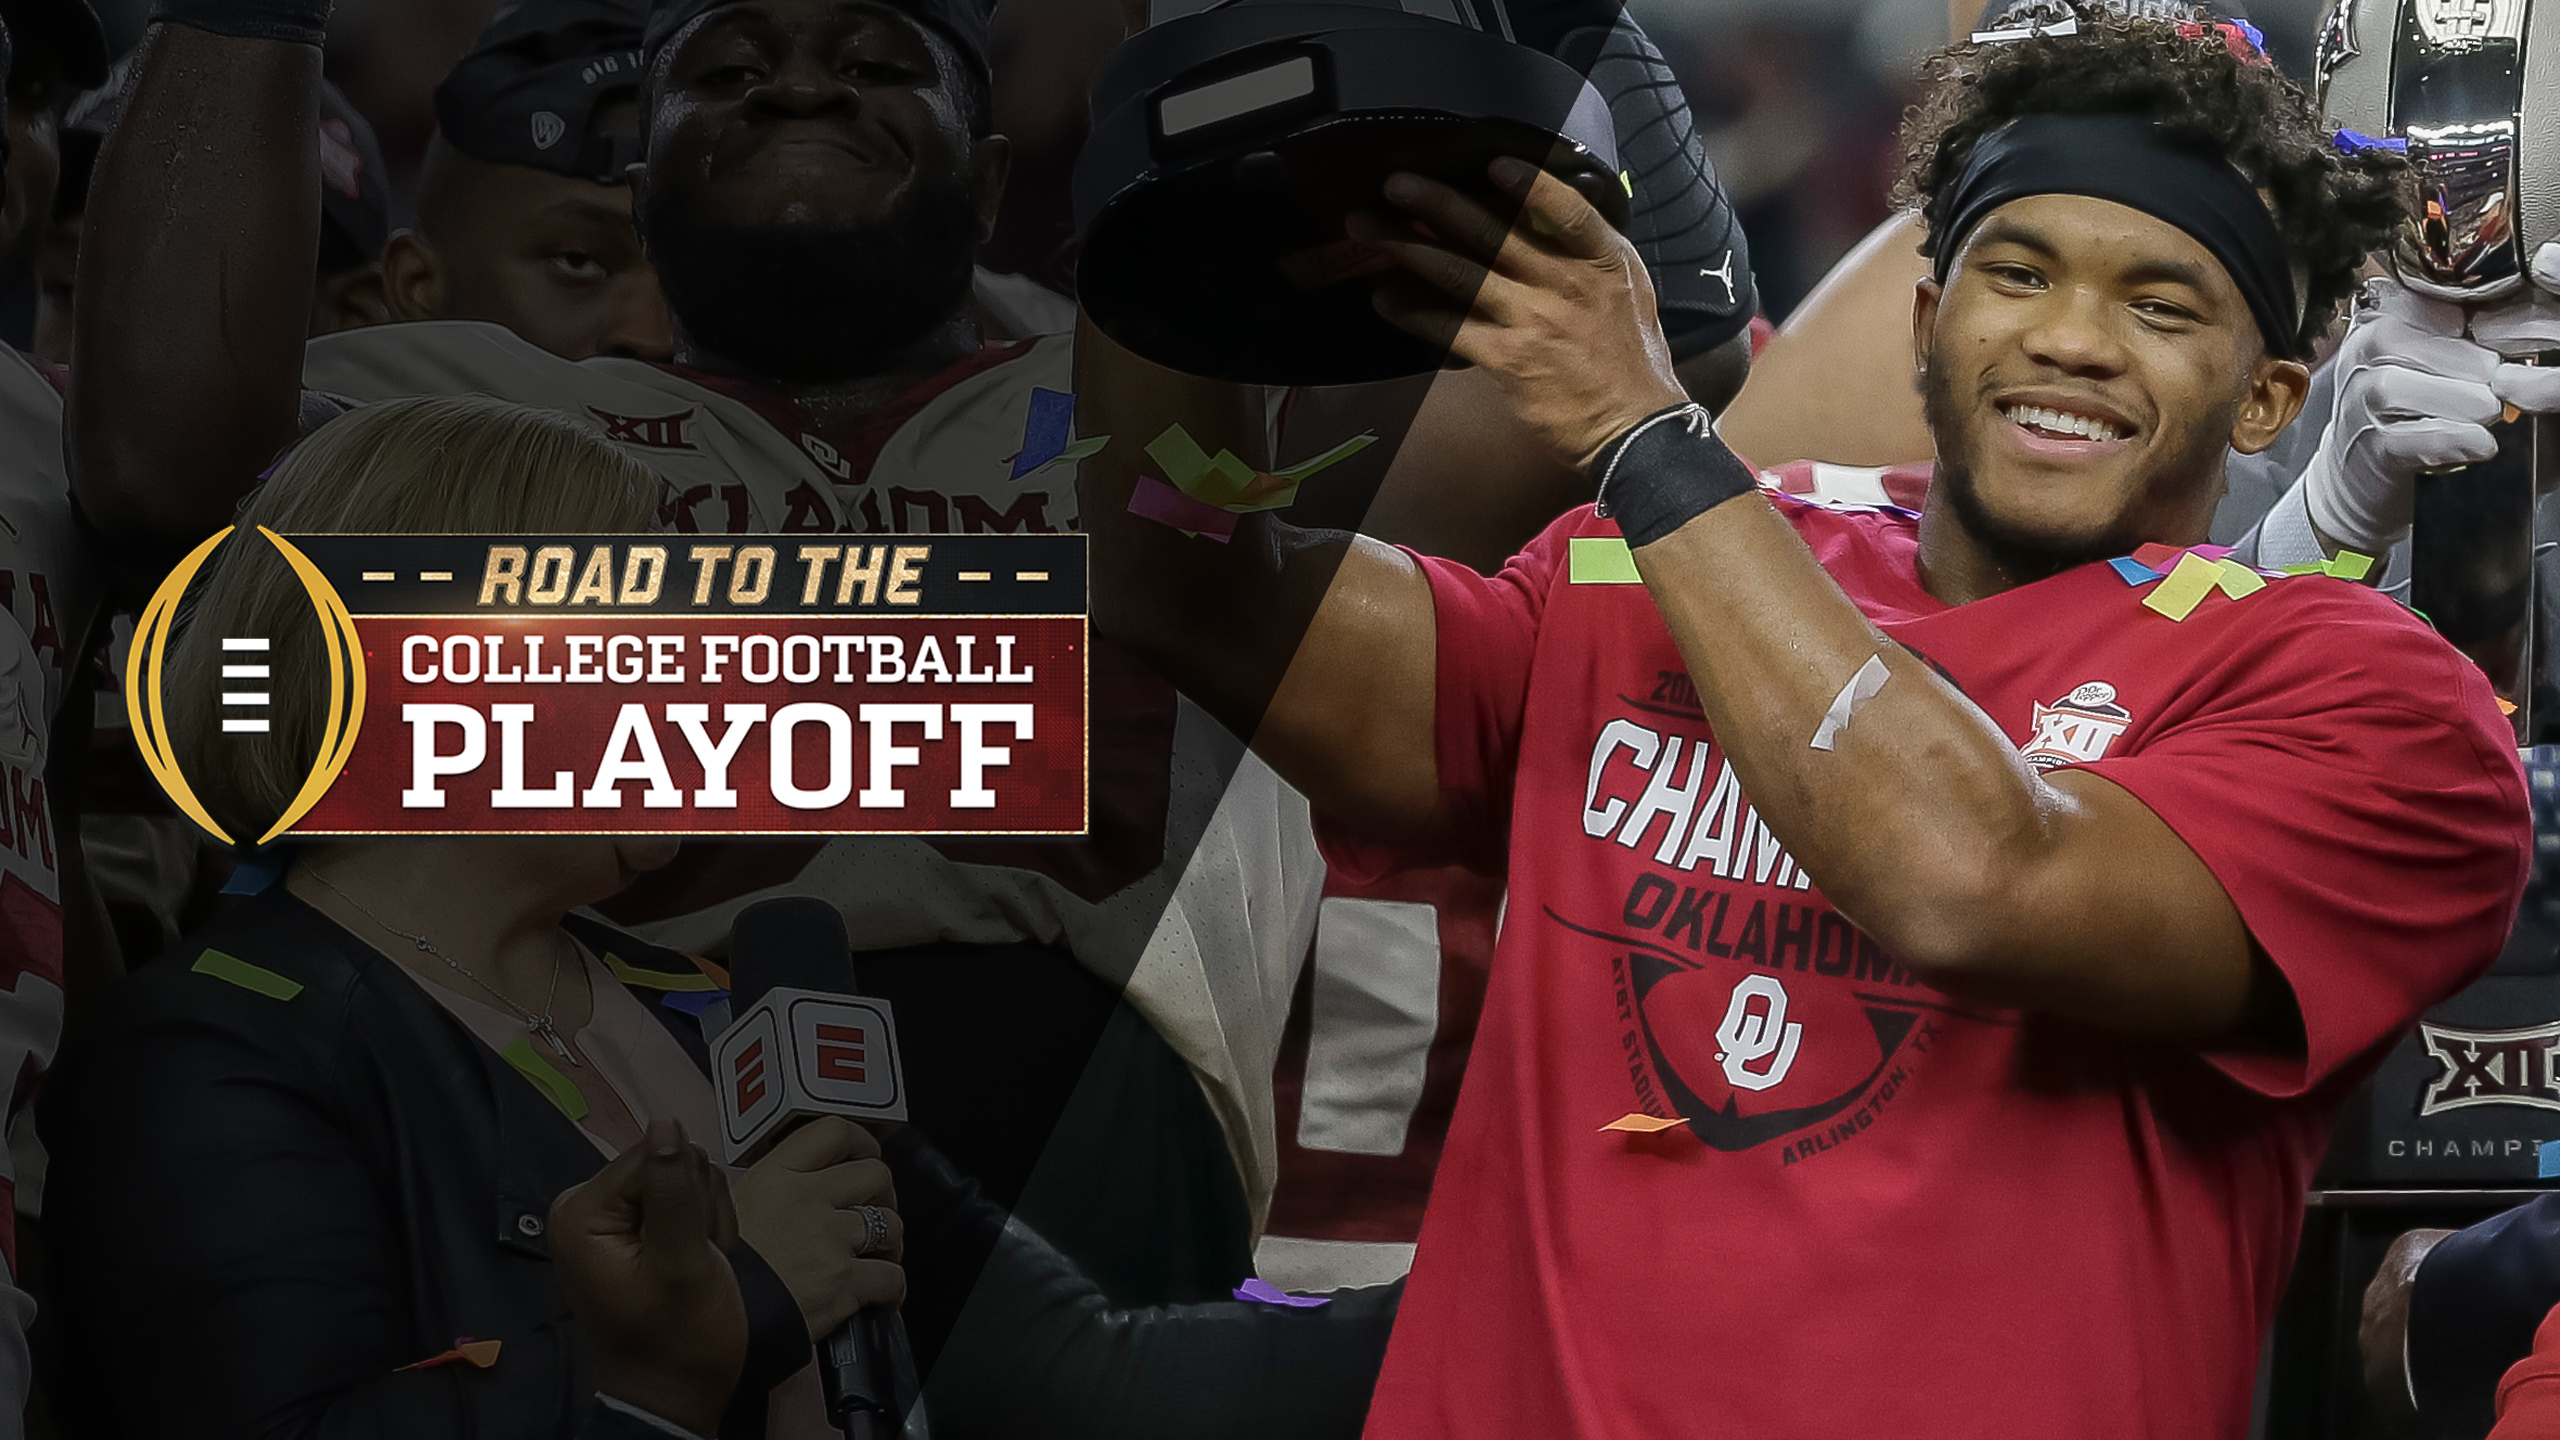 Road To The College Football Playoff Presented by Capital One